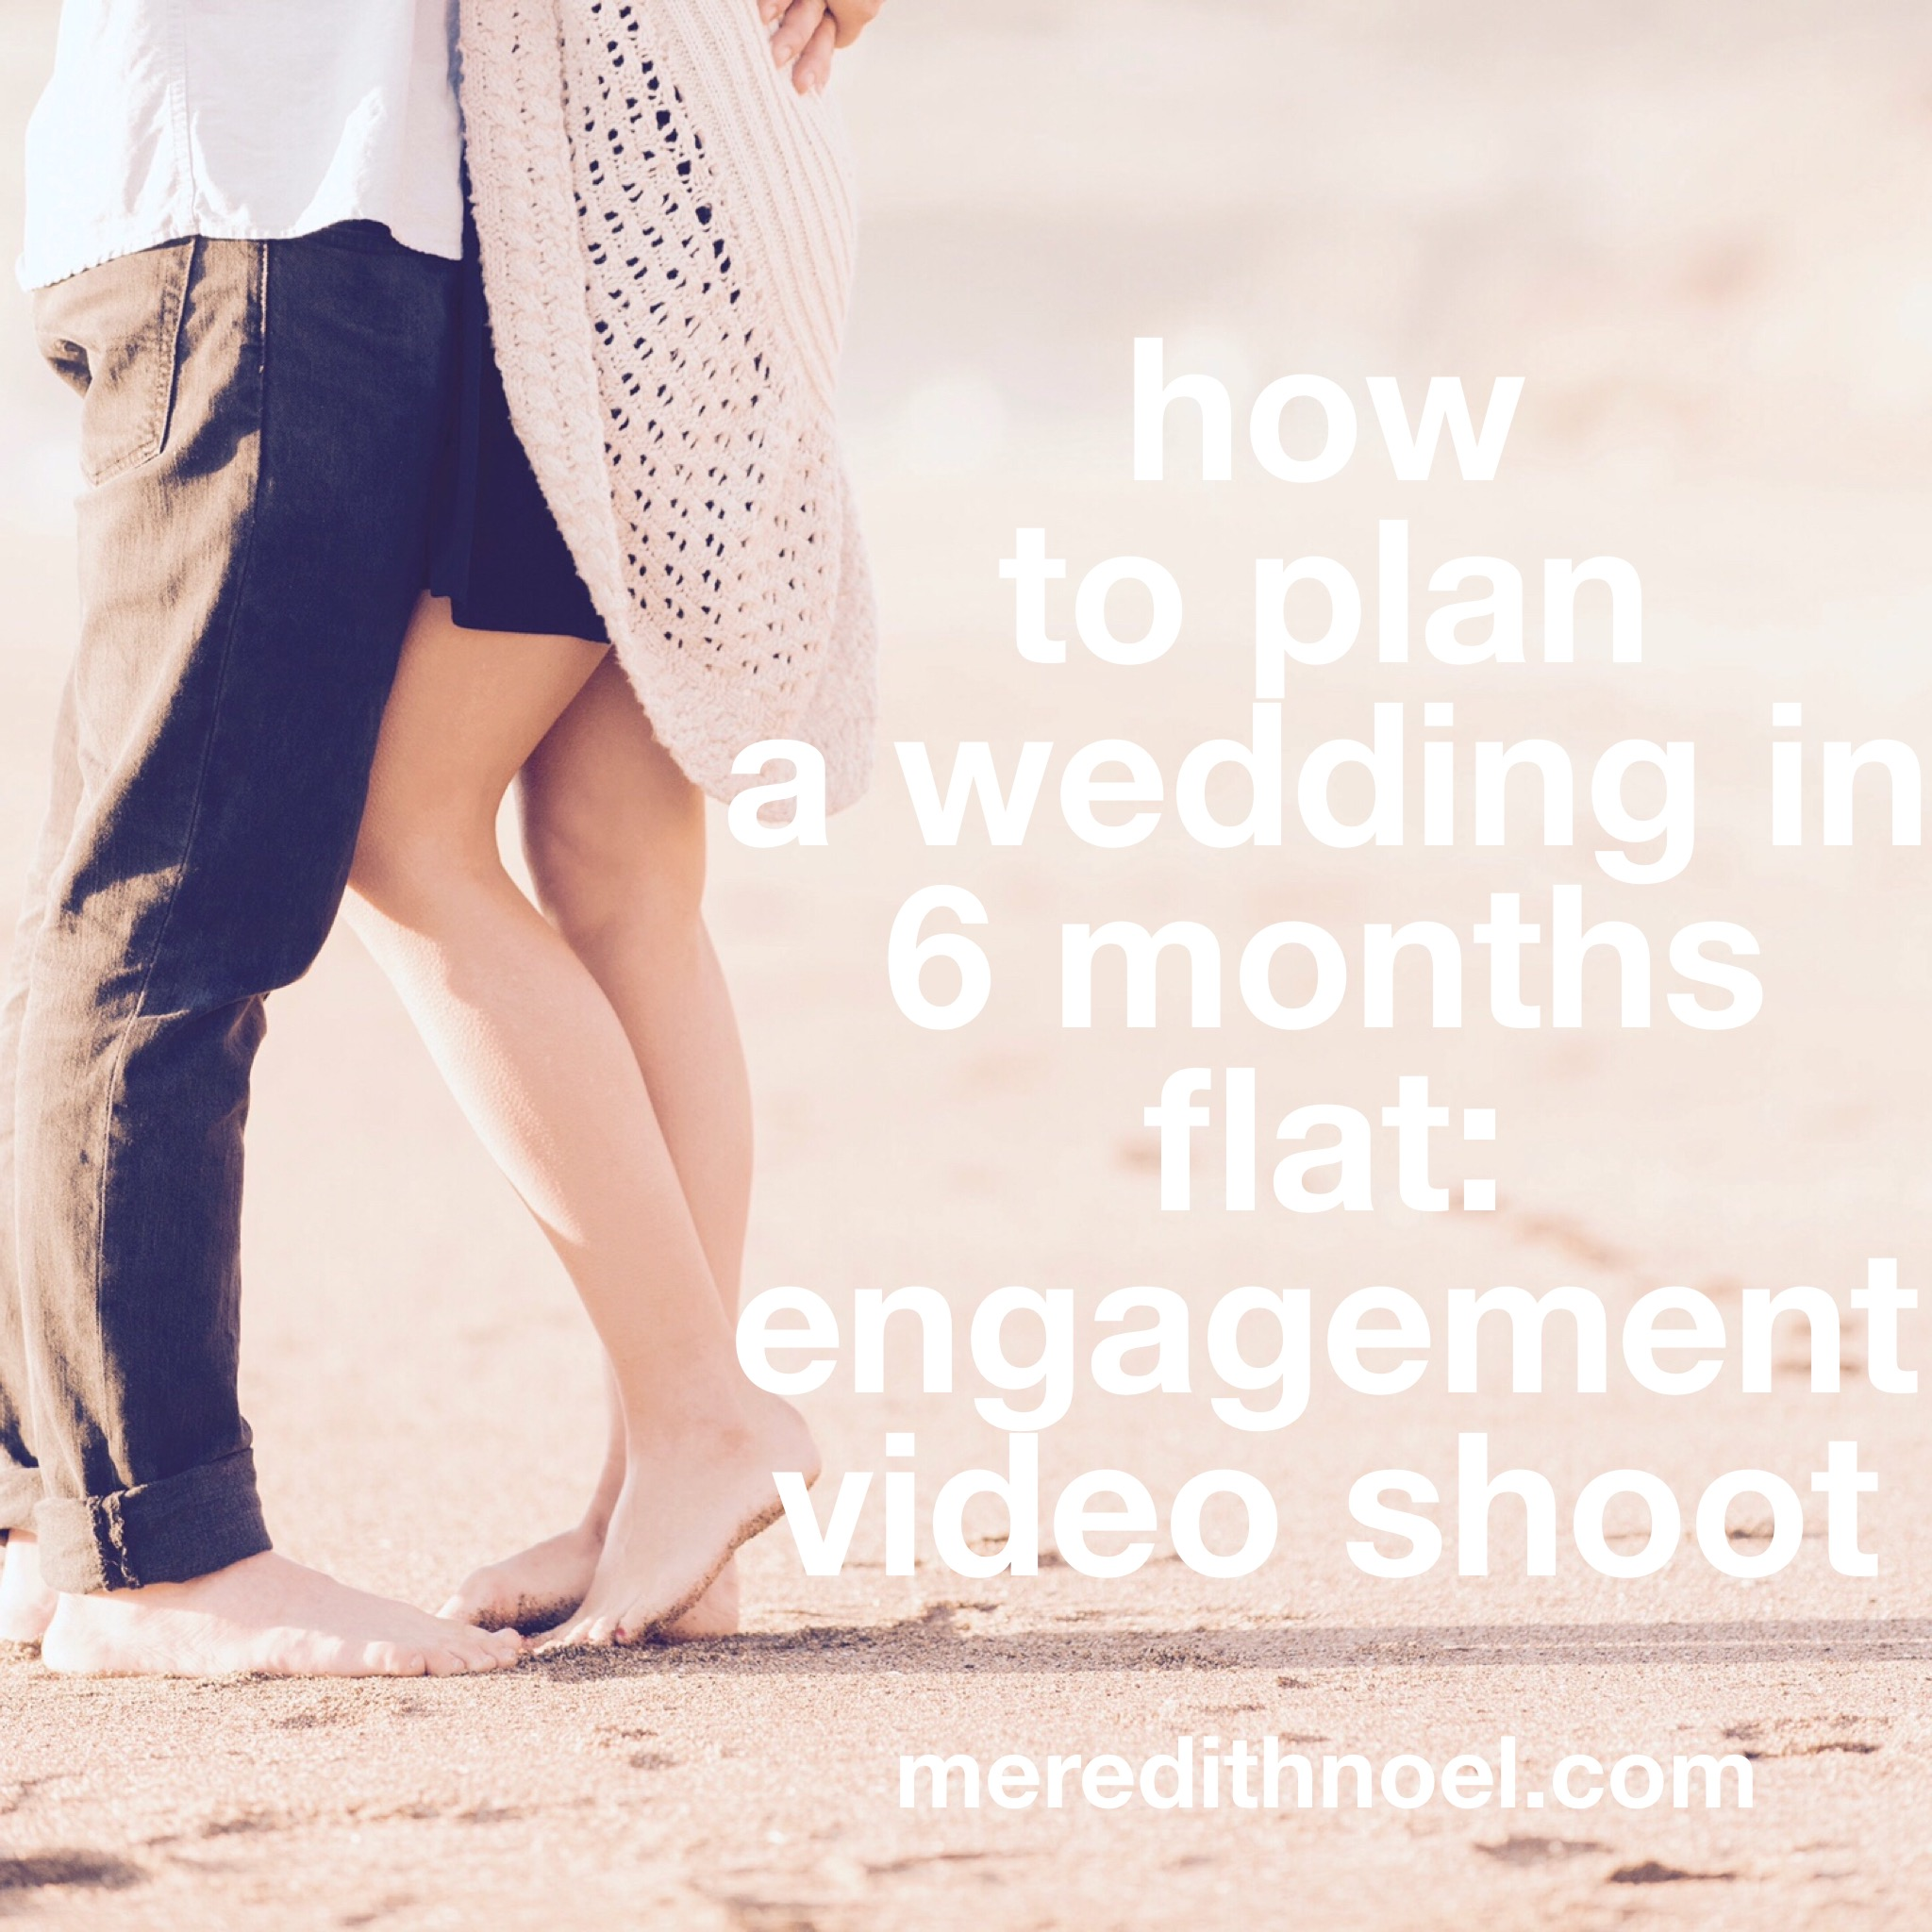 How To Plan A Wedding In 6 Months Flat: Week 10